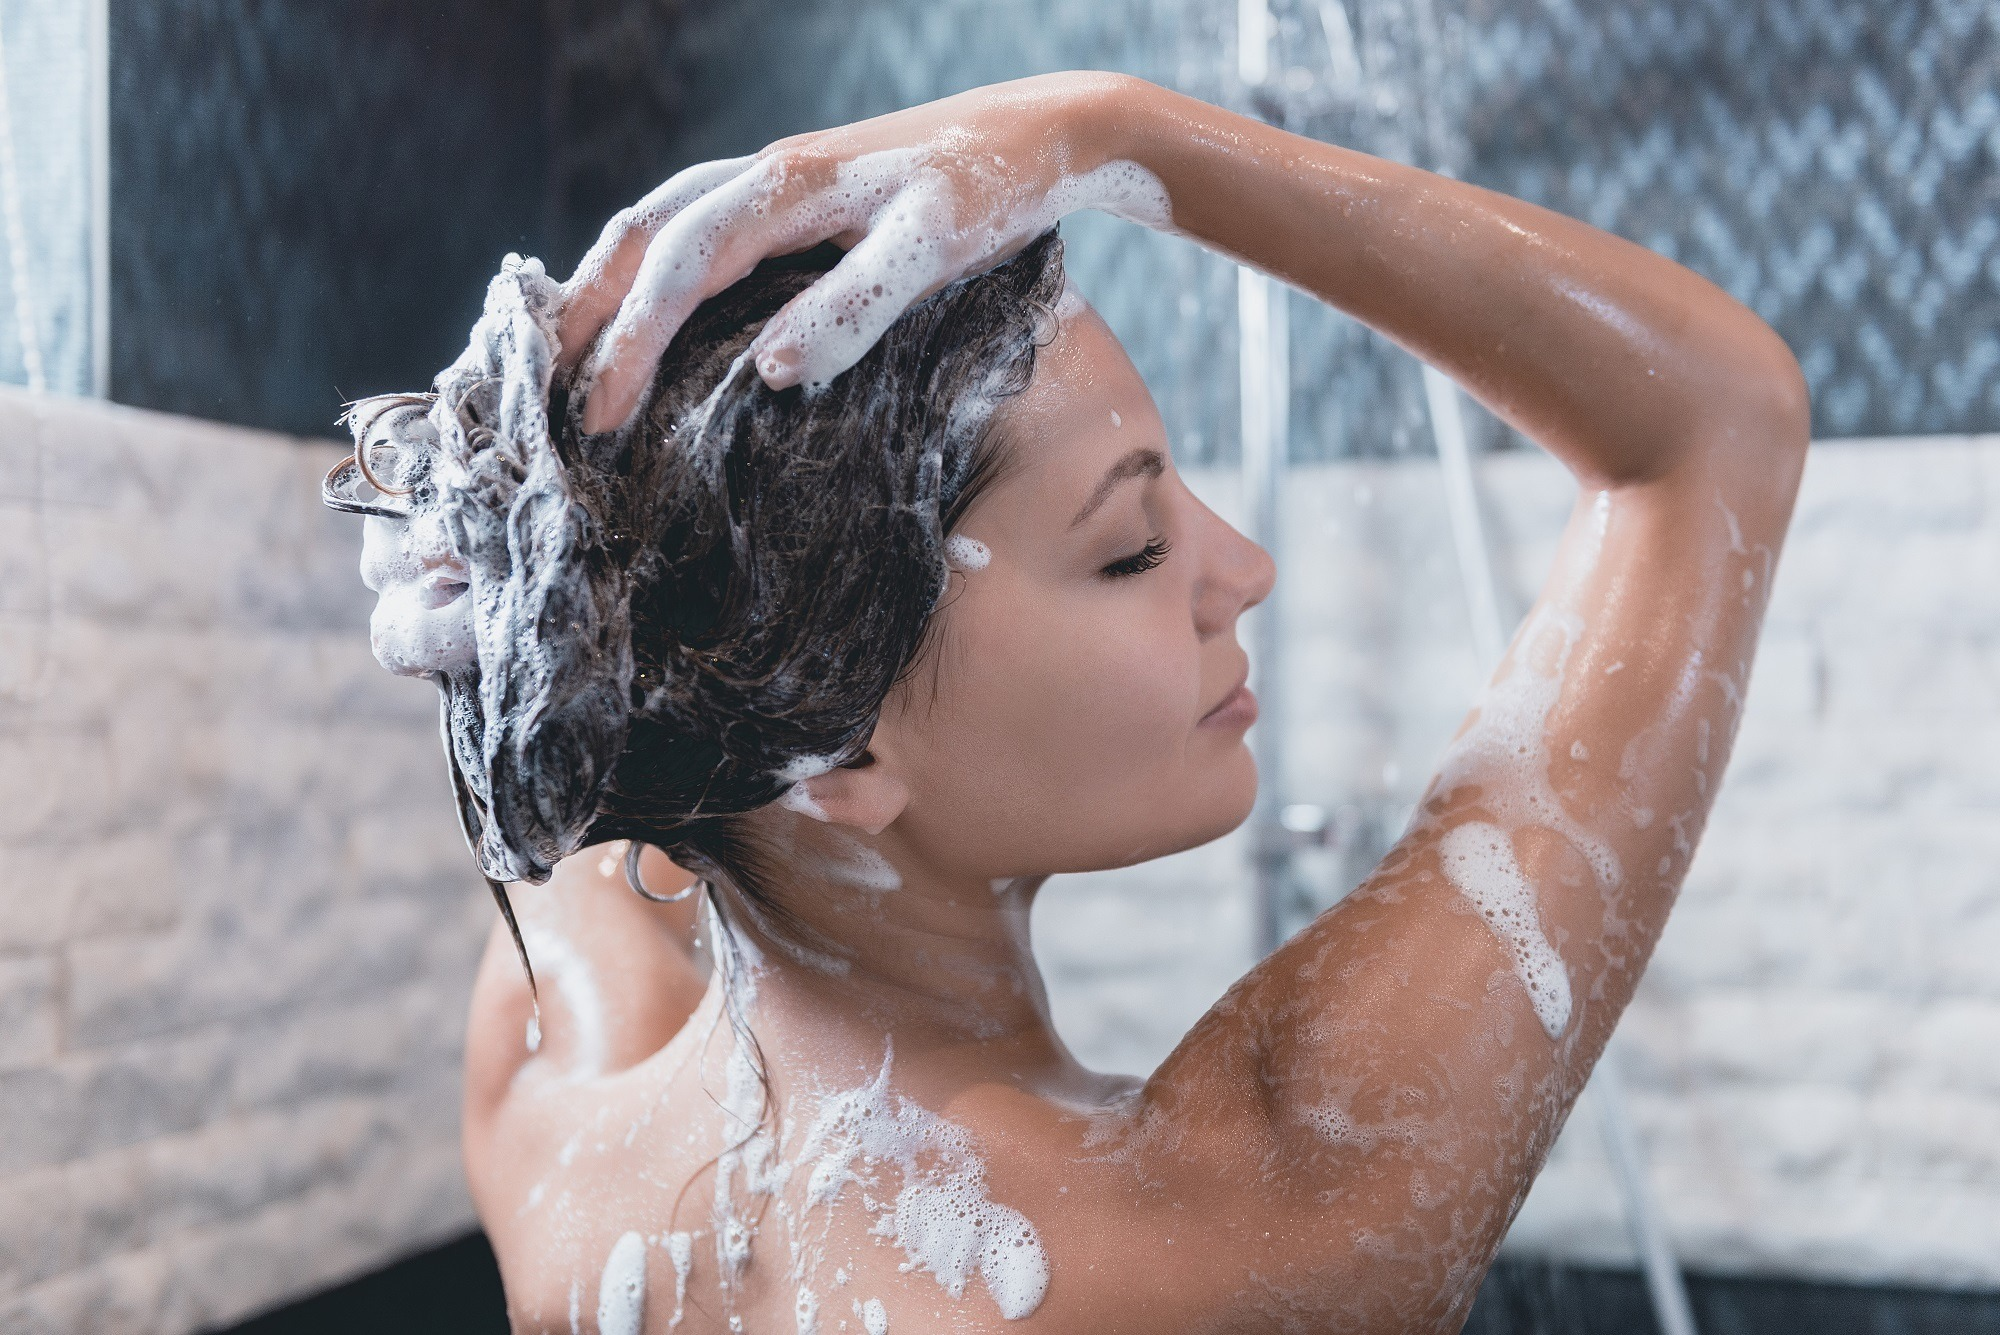 Frizzy hair remedies: Closeup shot of a woman shampooing her hair in the shower